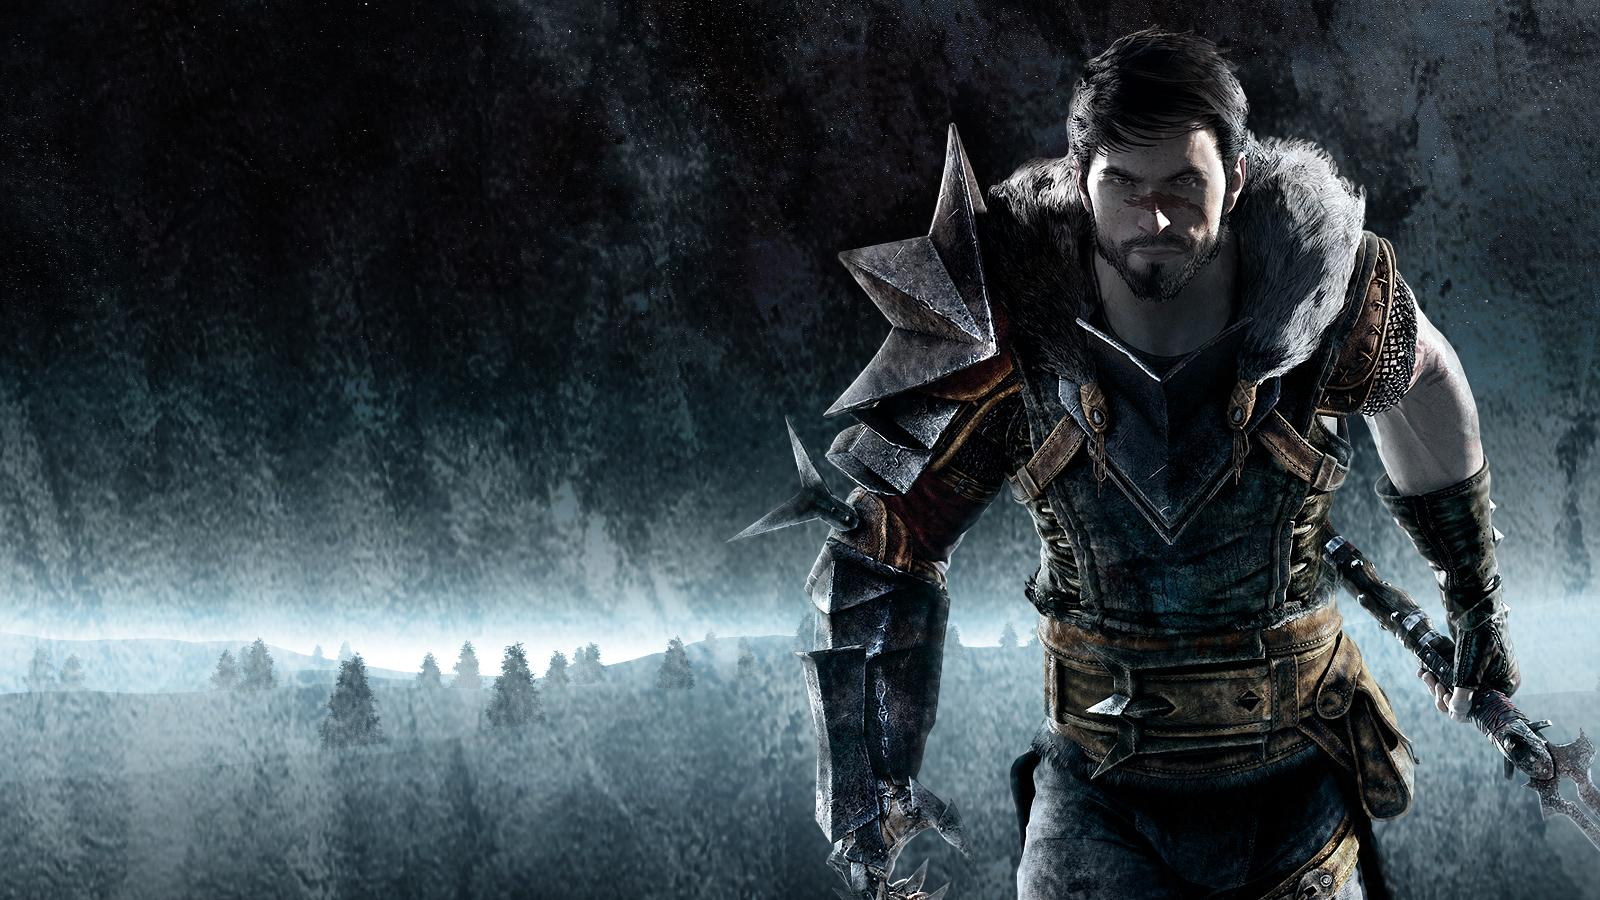 Dragon Age 2 Wallpaper